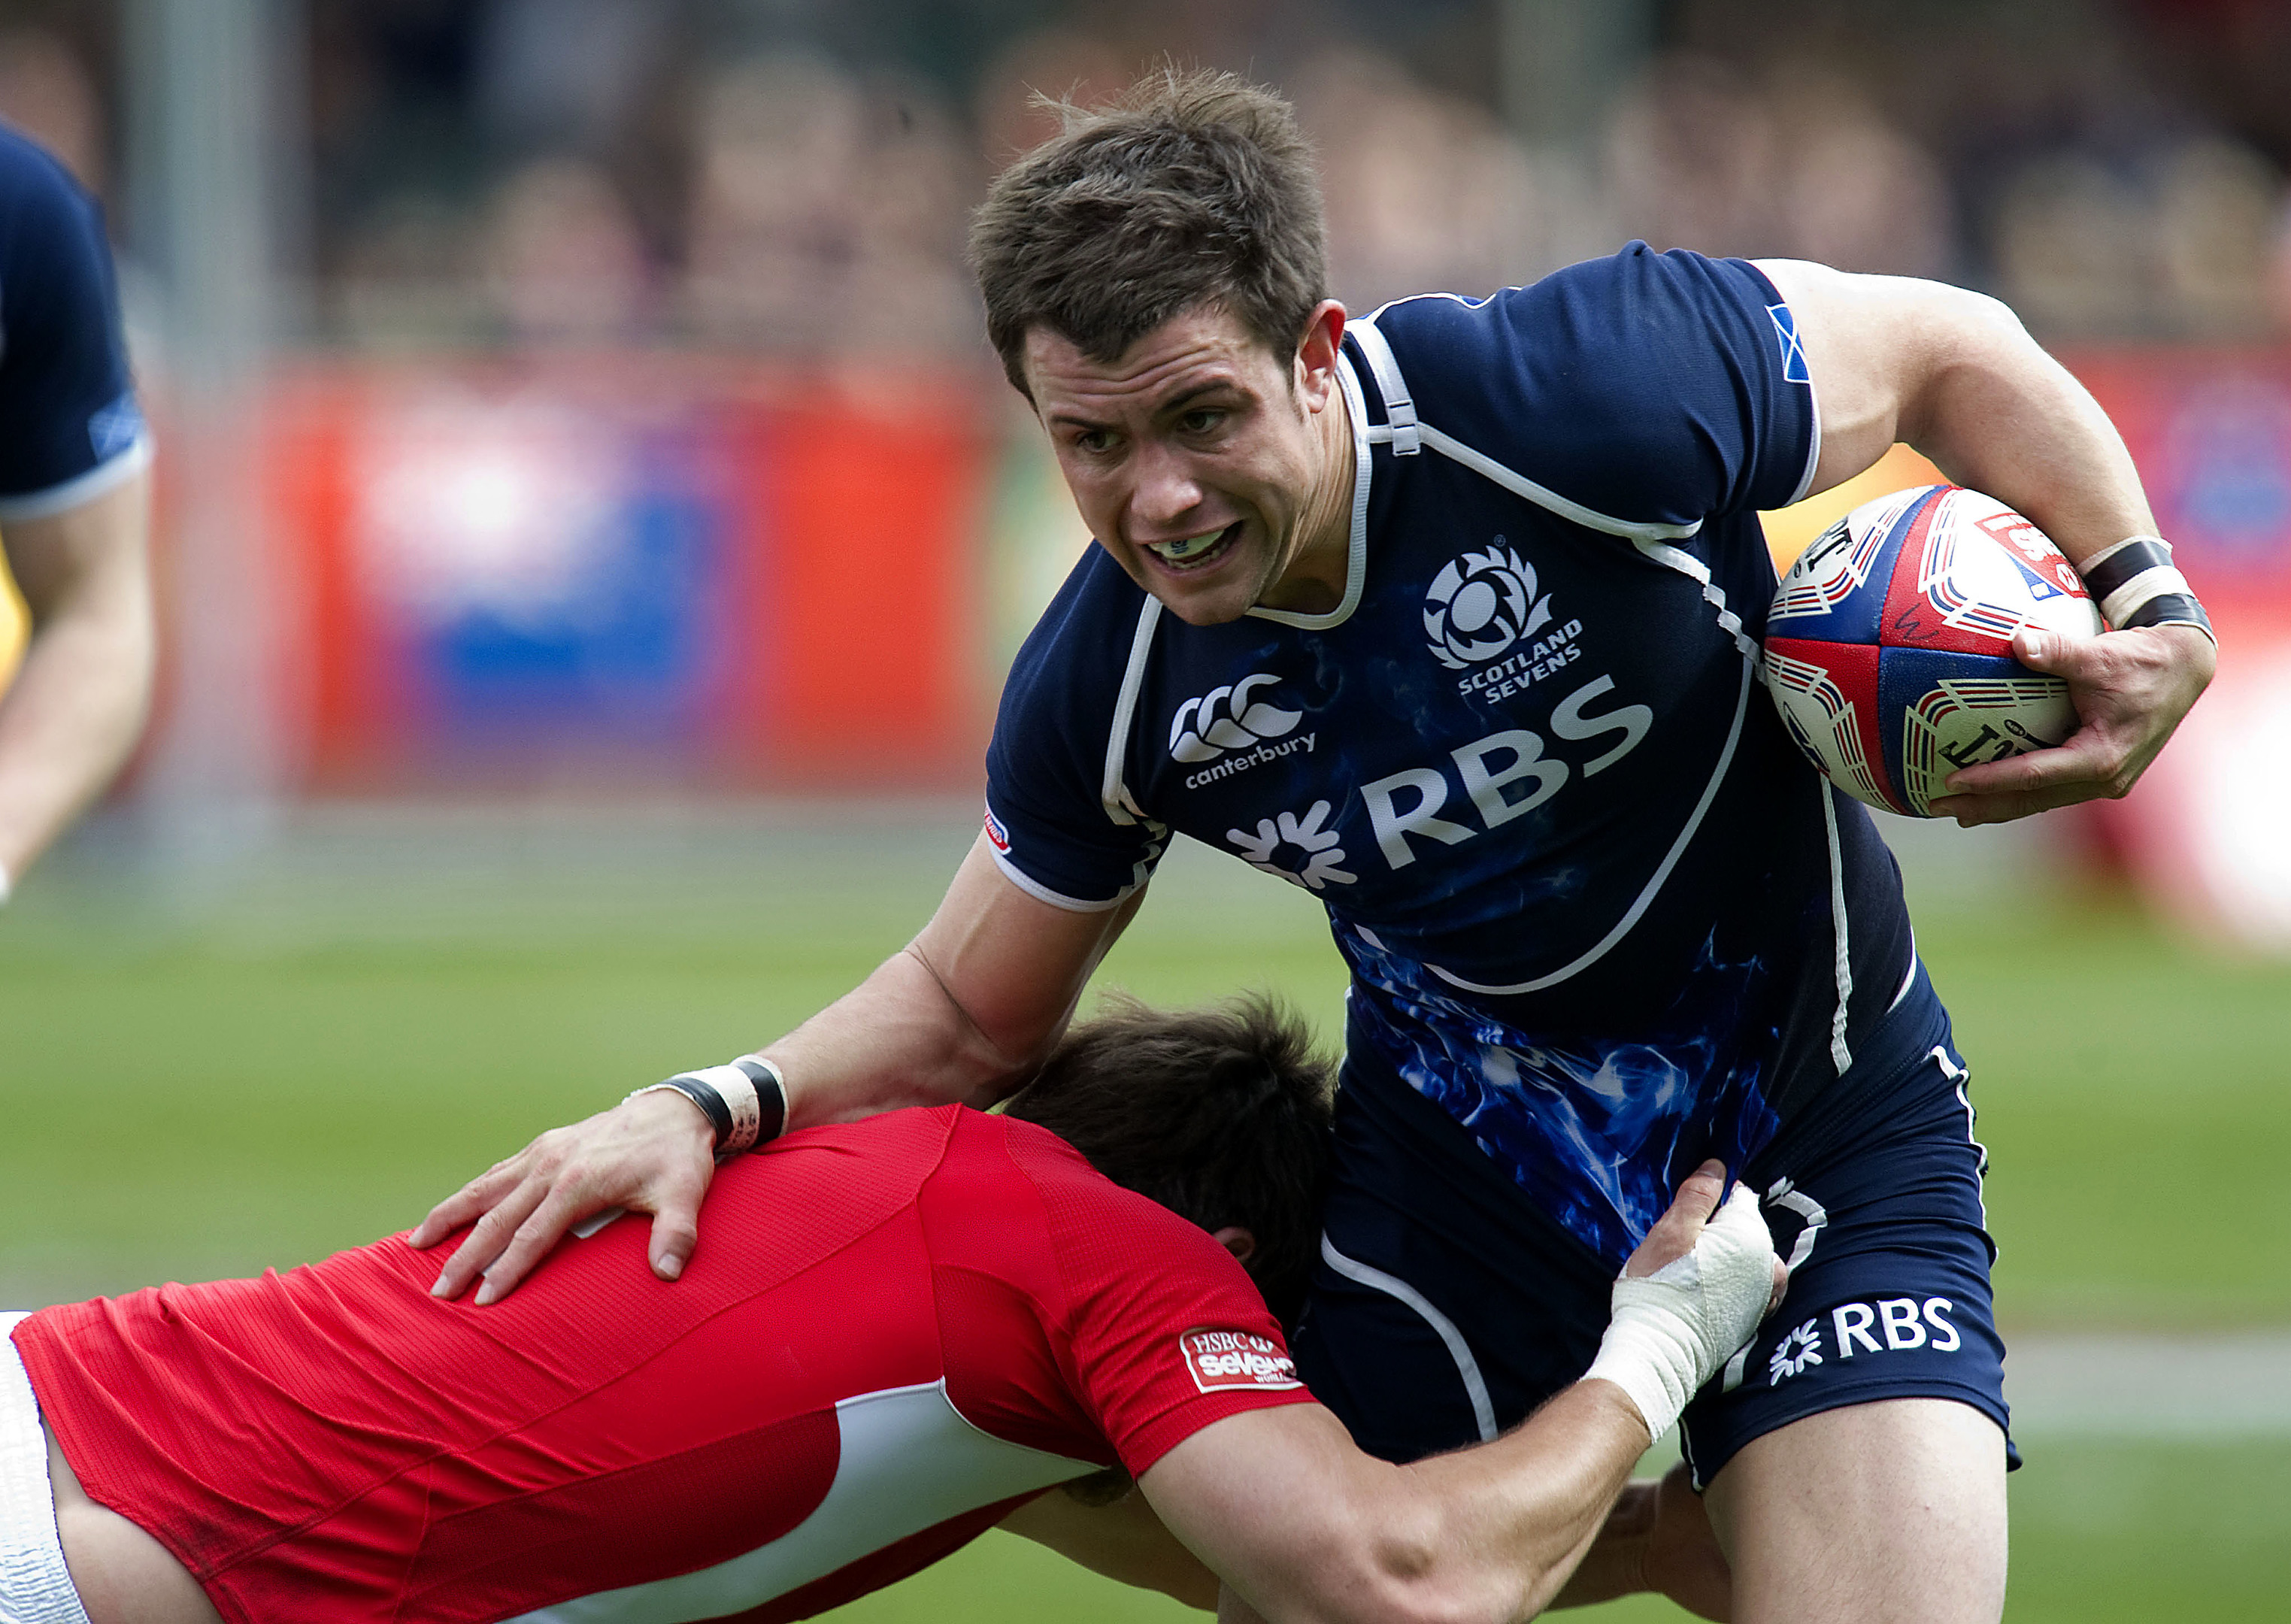 James Fleming played in 45 World Series events for Scotland 7s.